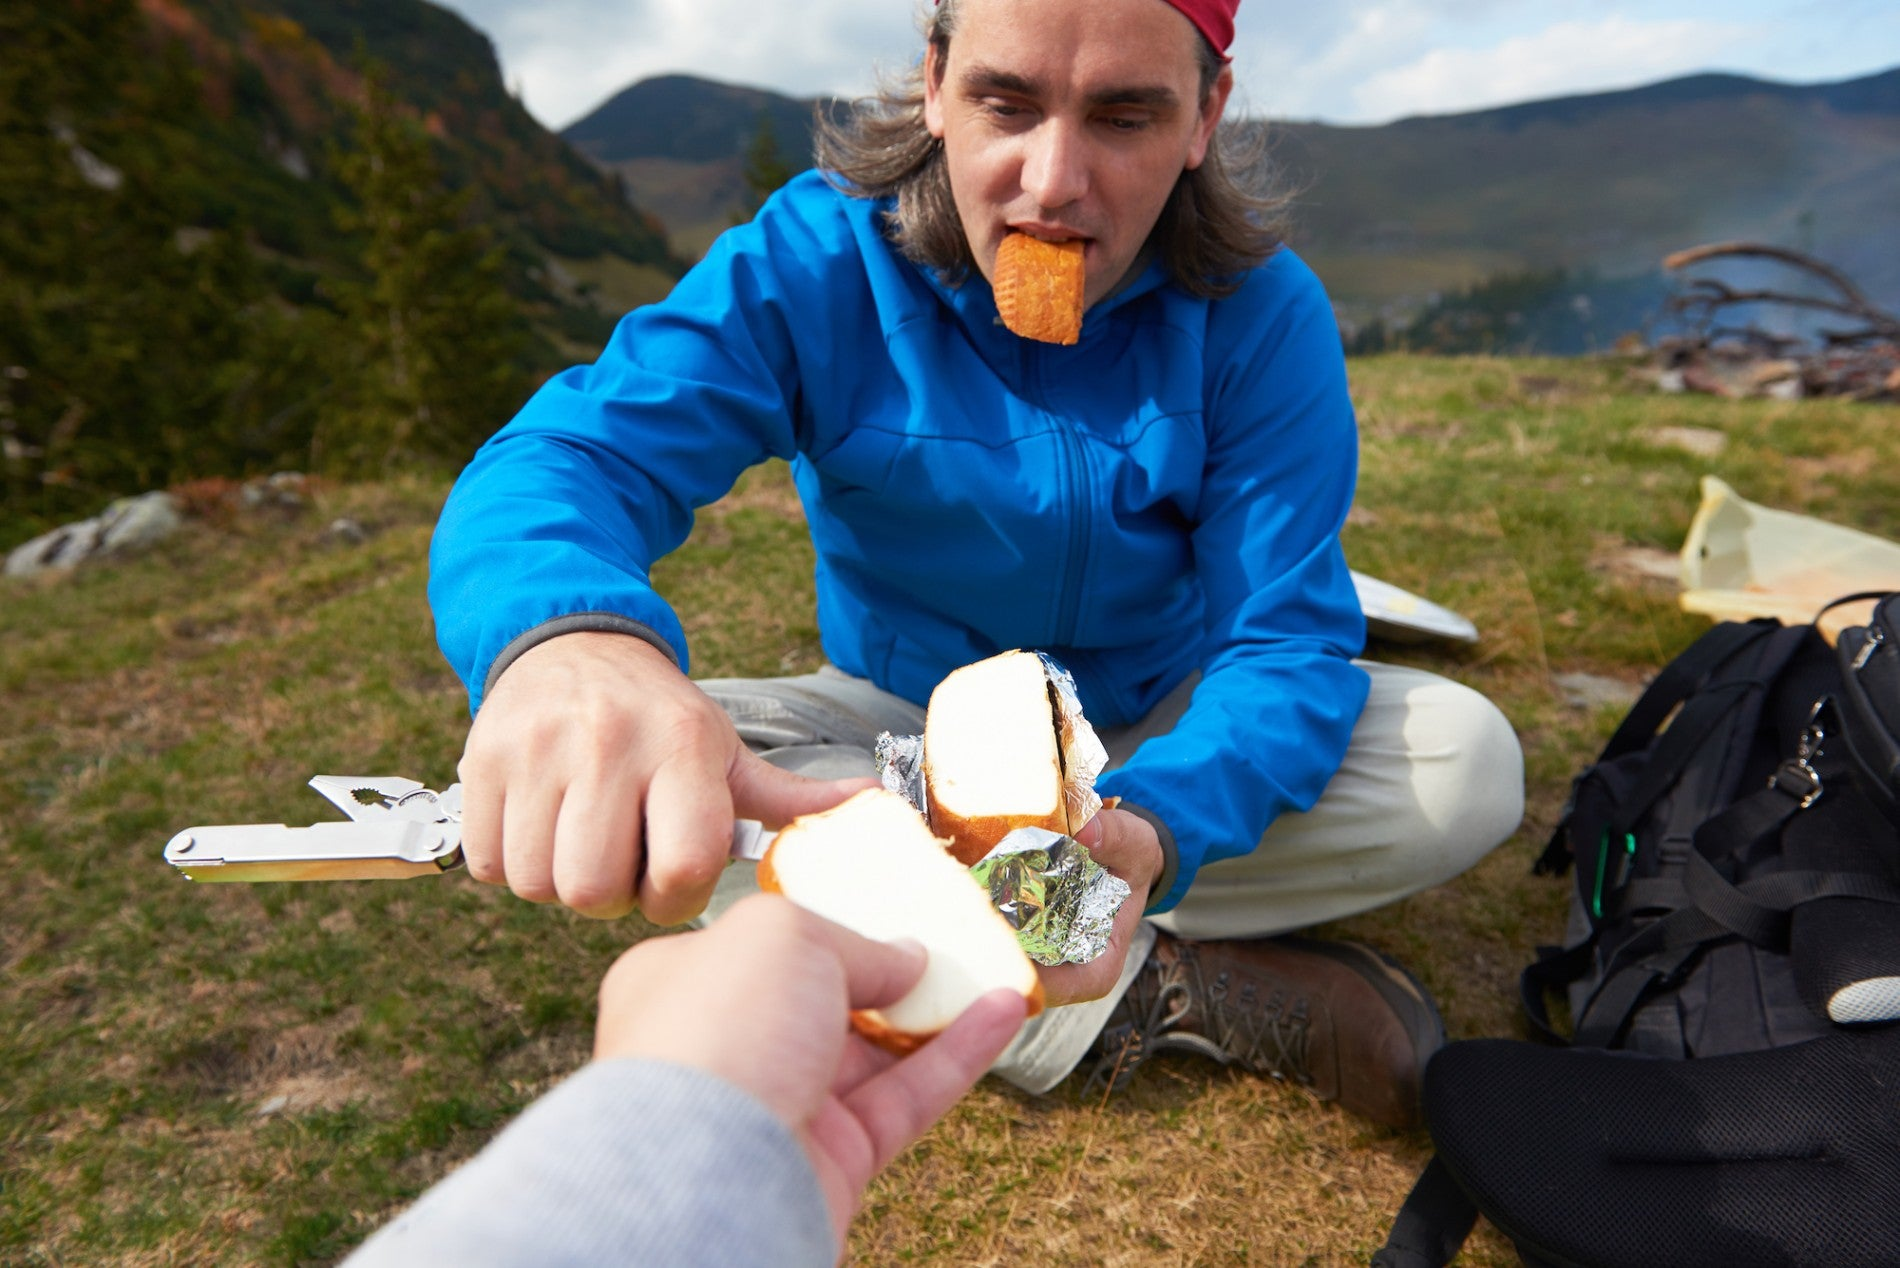 man slicing cheese held by photographer while seated in field